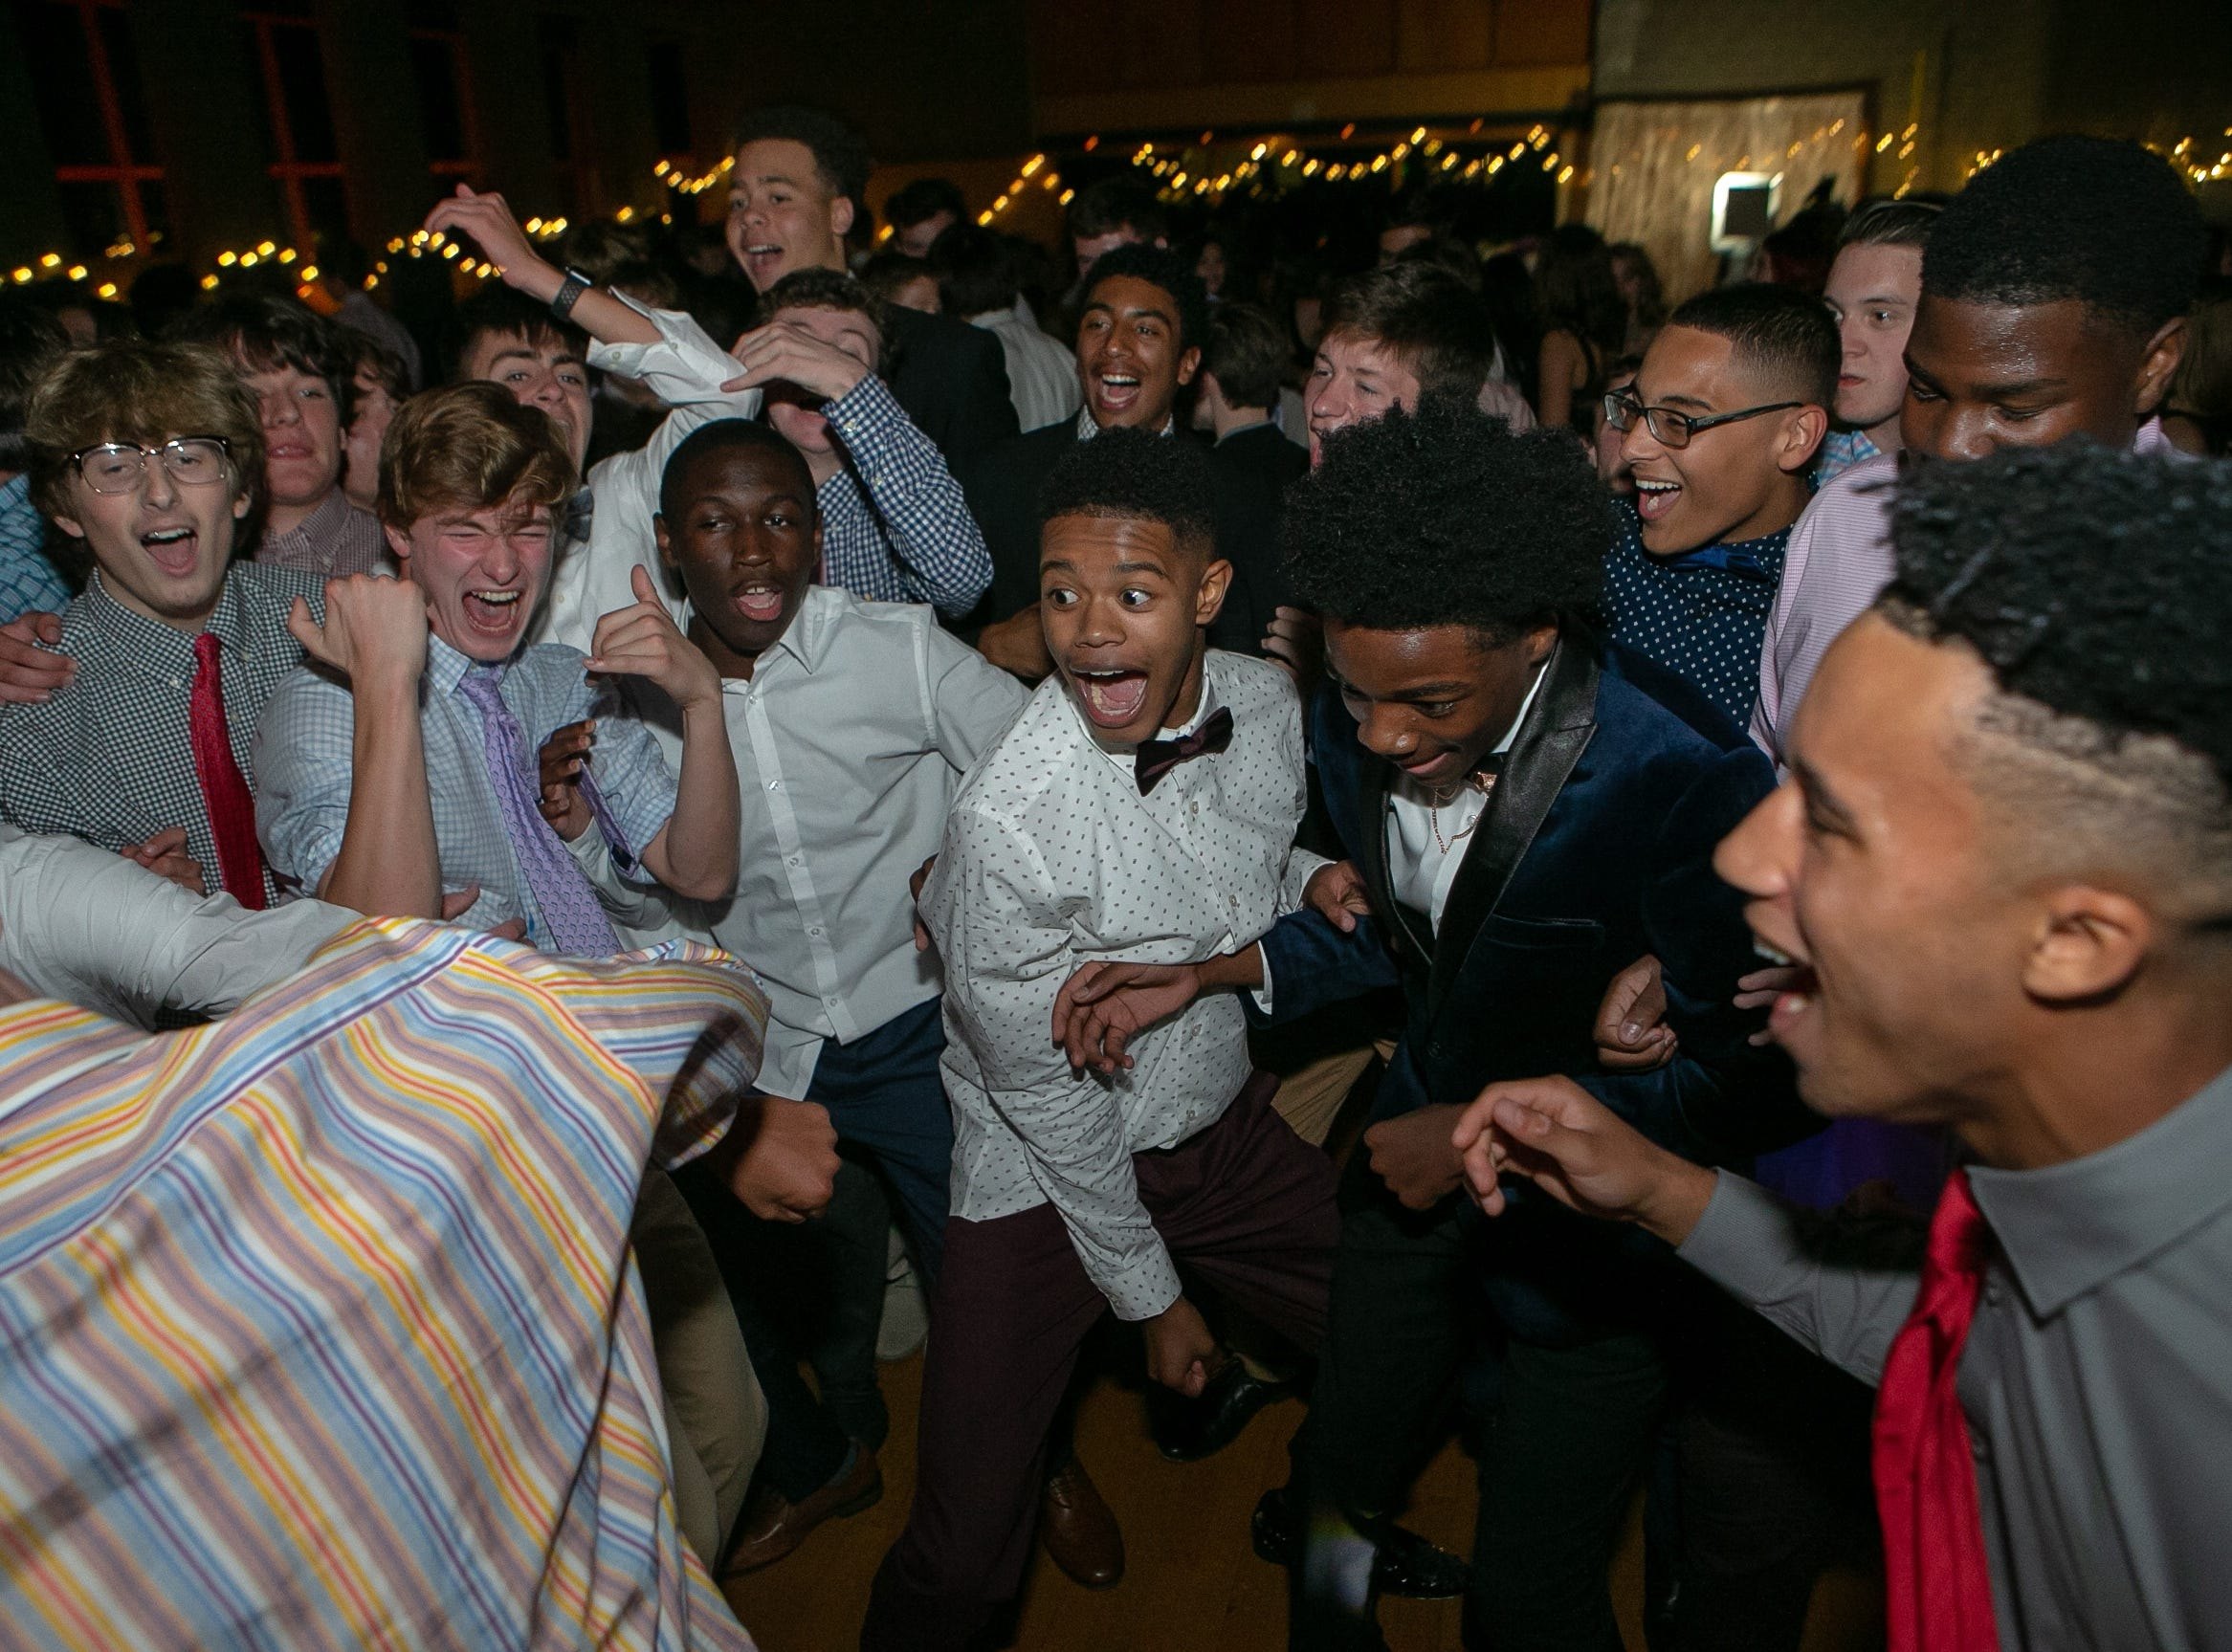 Over 200 students from The Tatnall School celebrate their homecoming dance Saturday night, October 13, 2018.